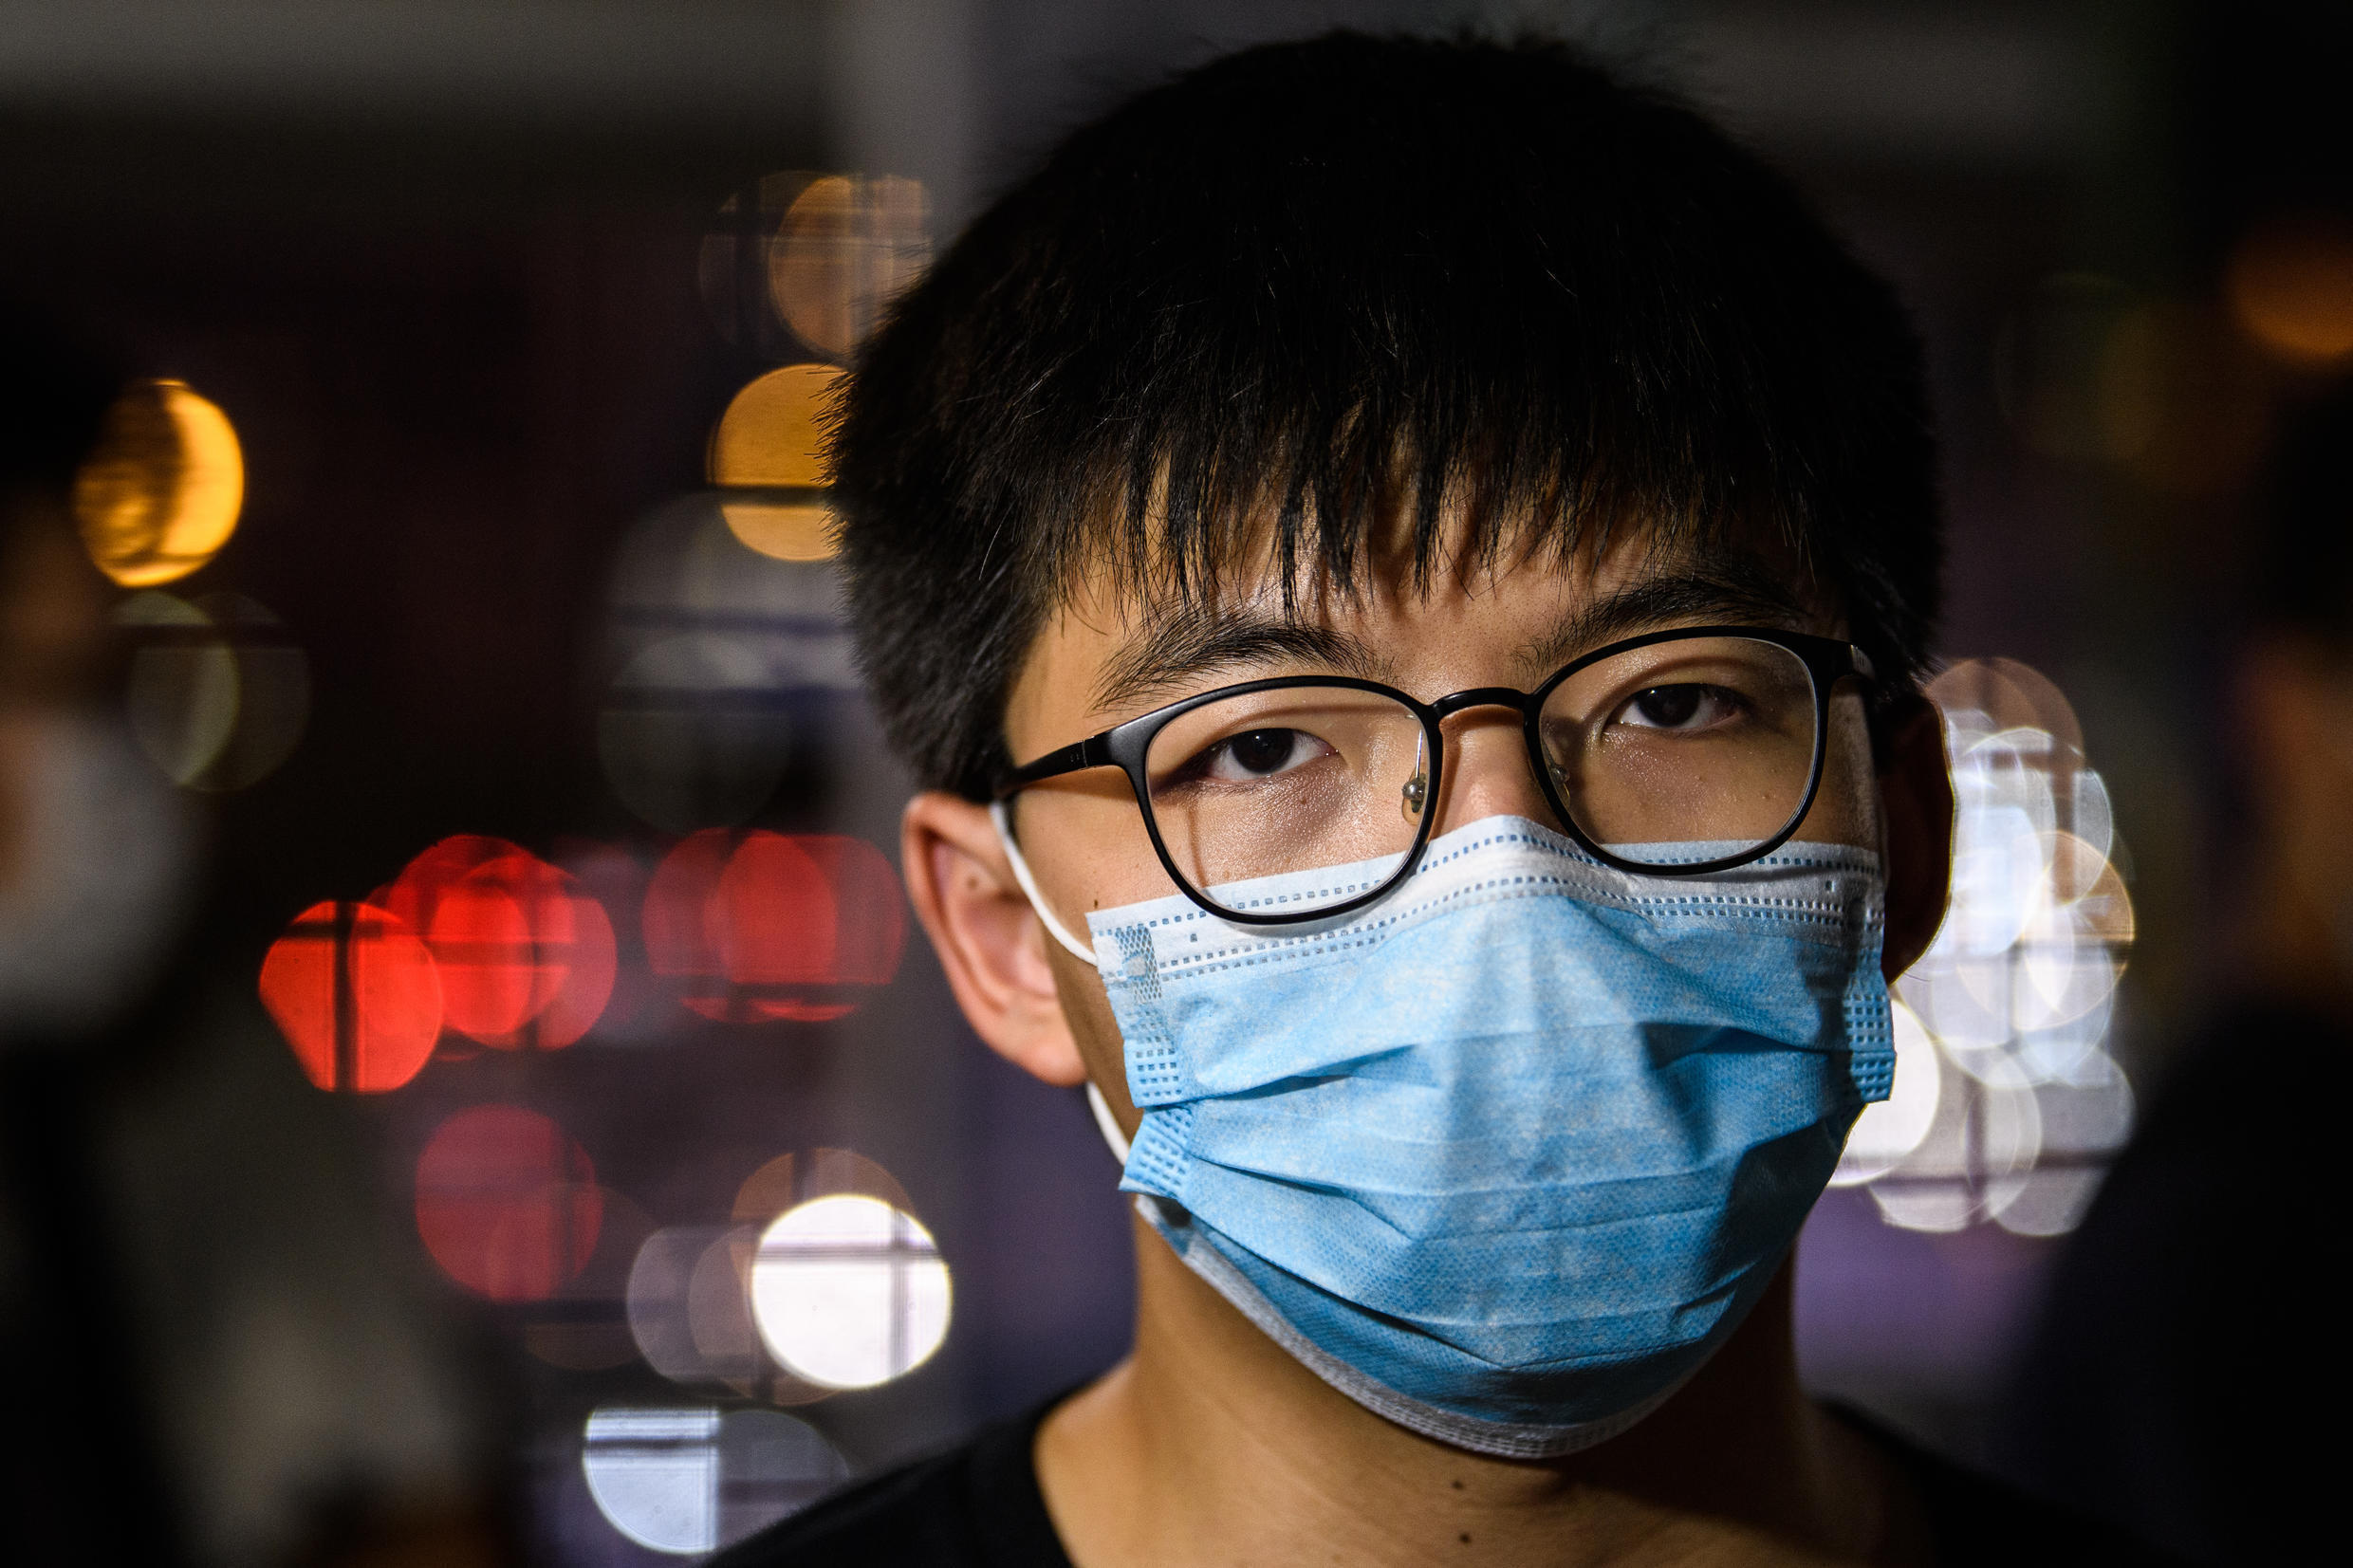 Joshua Wong has already spent time in prison for leading Hong Kong democracy protests and has said he is prepared for more time behind bars